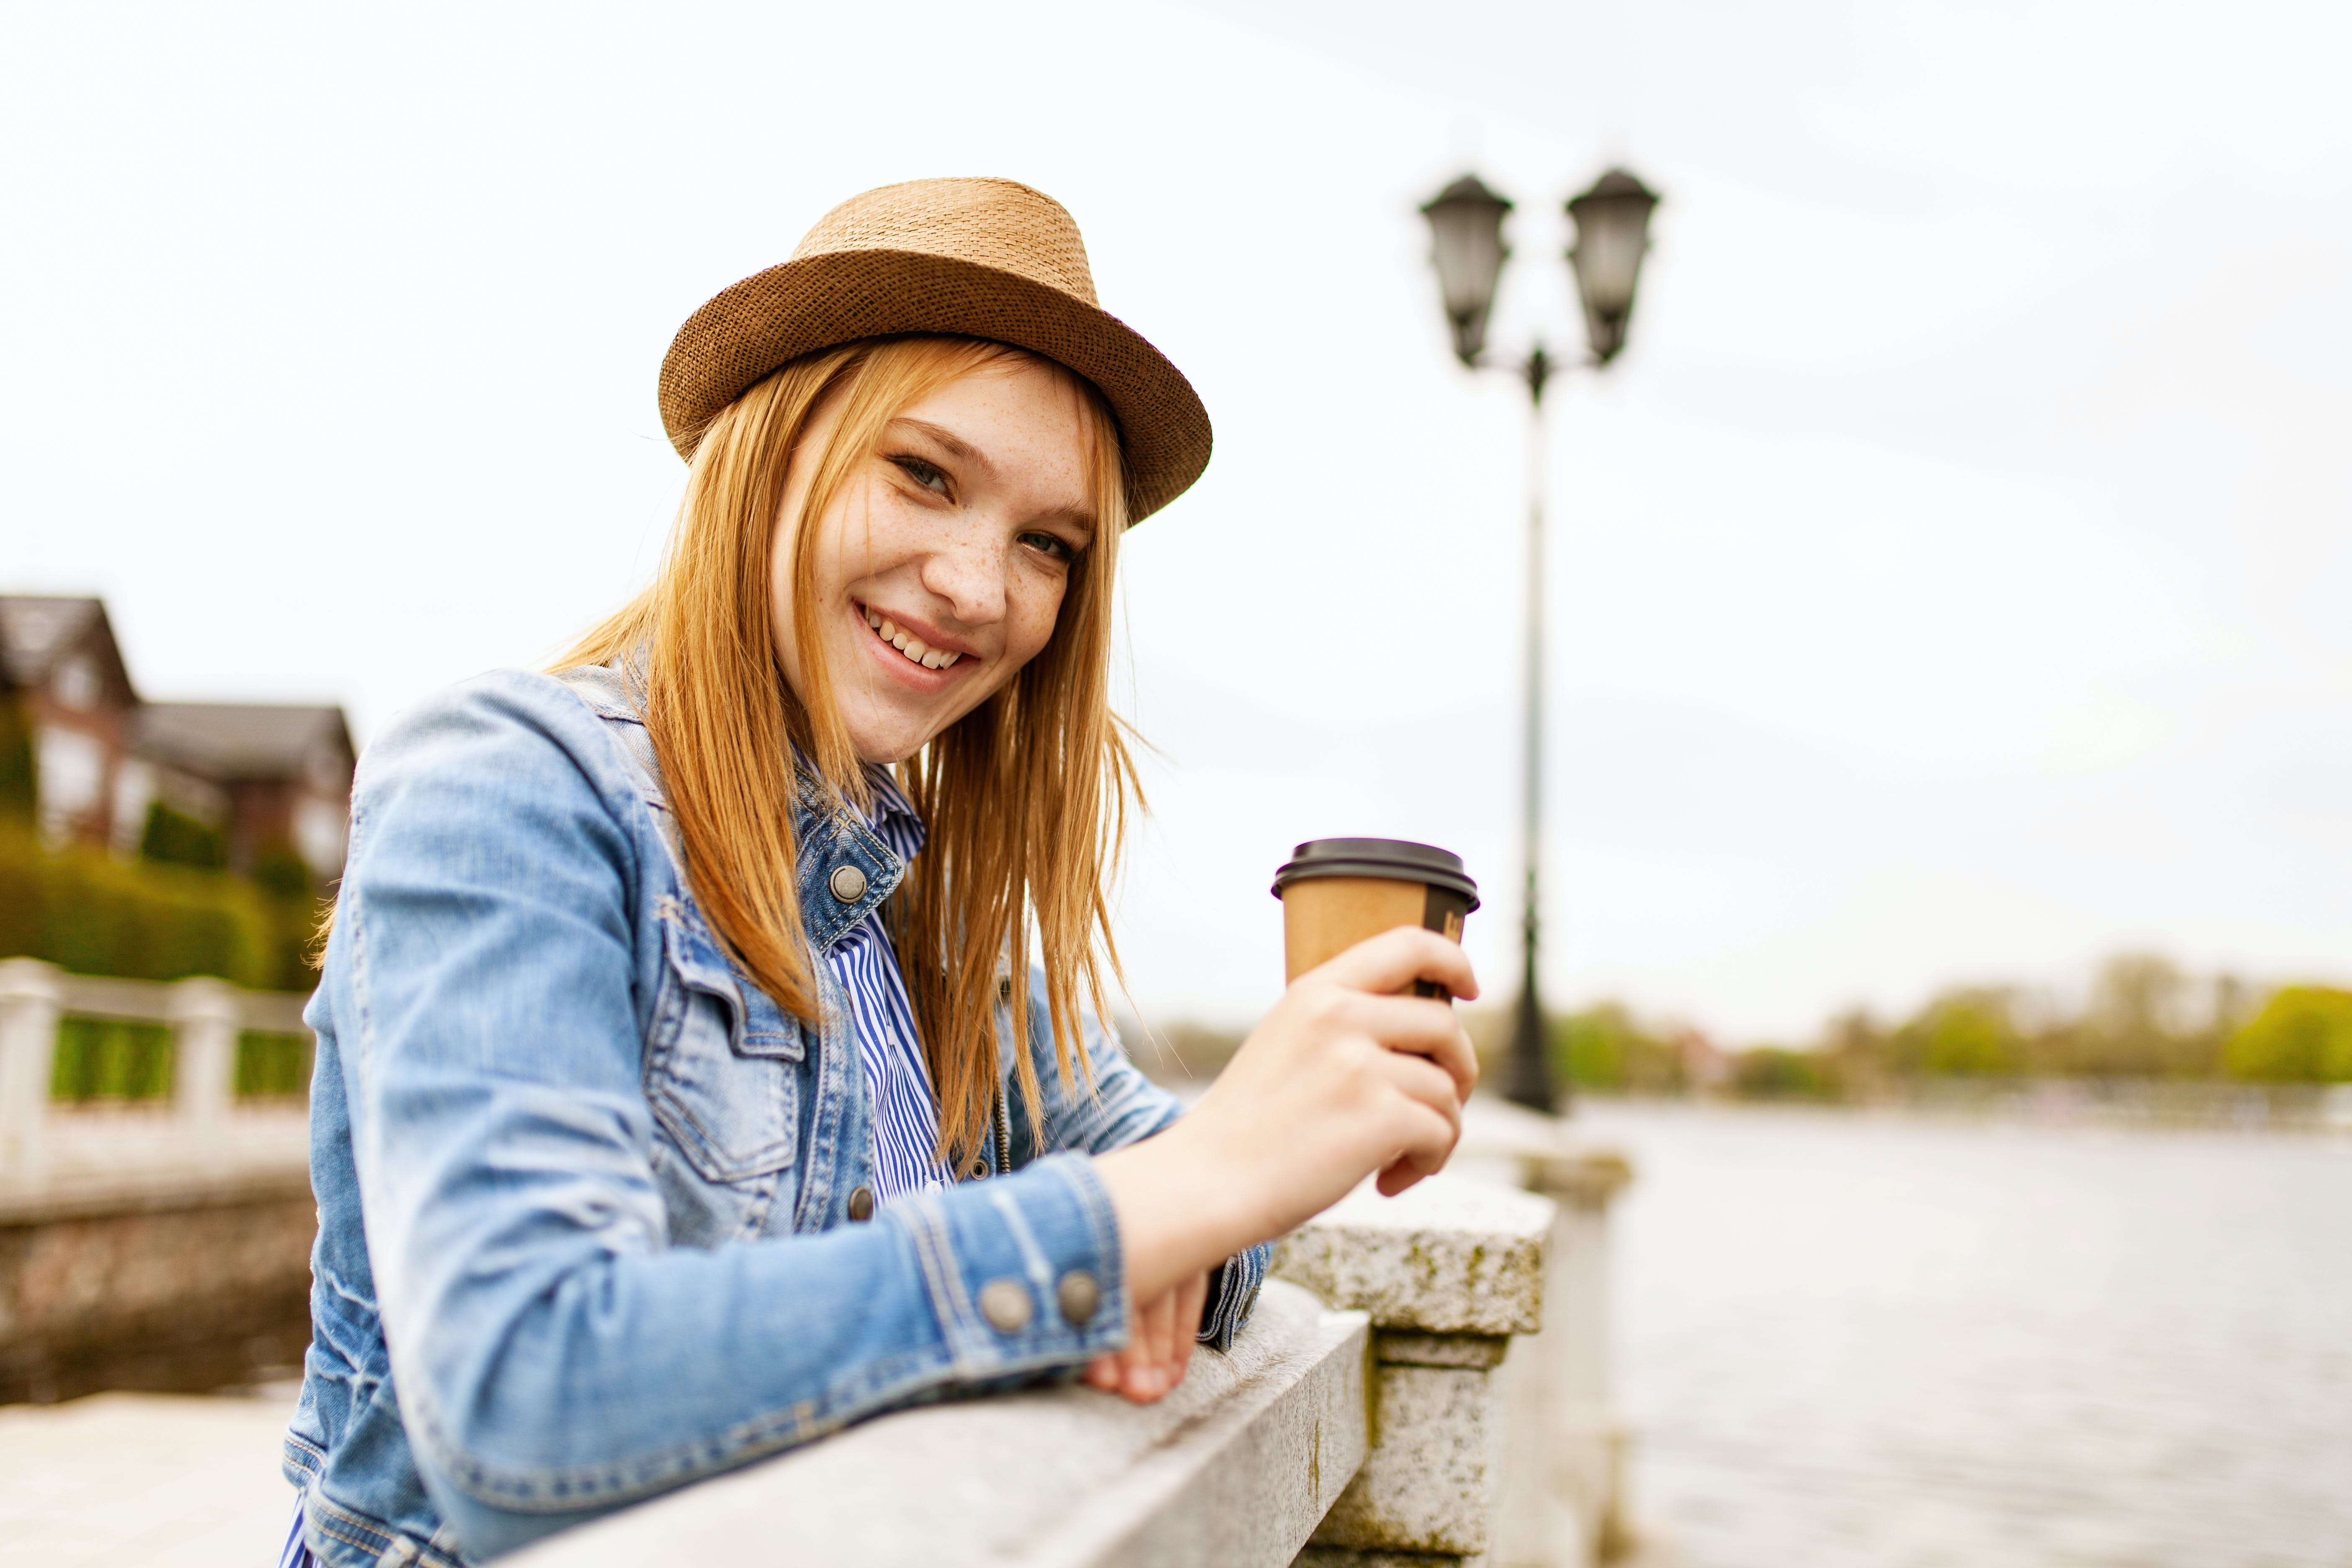 Woman Wearing Blue Denim Jacket While Holding Disposable Coffee Cup